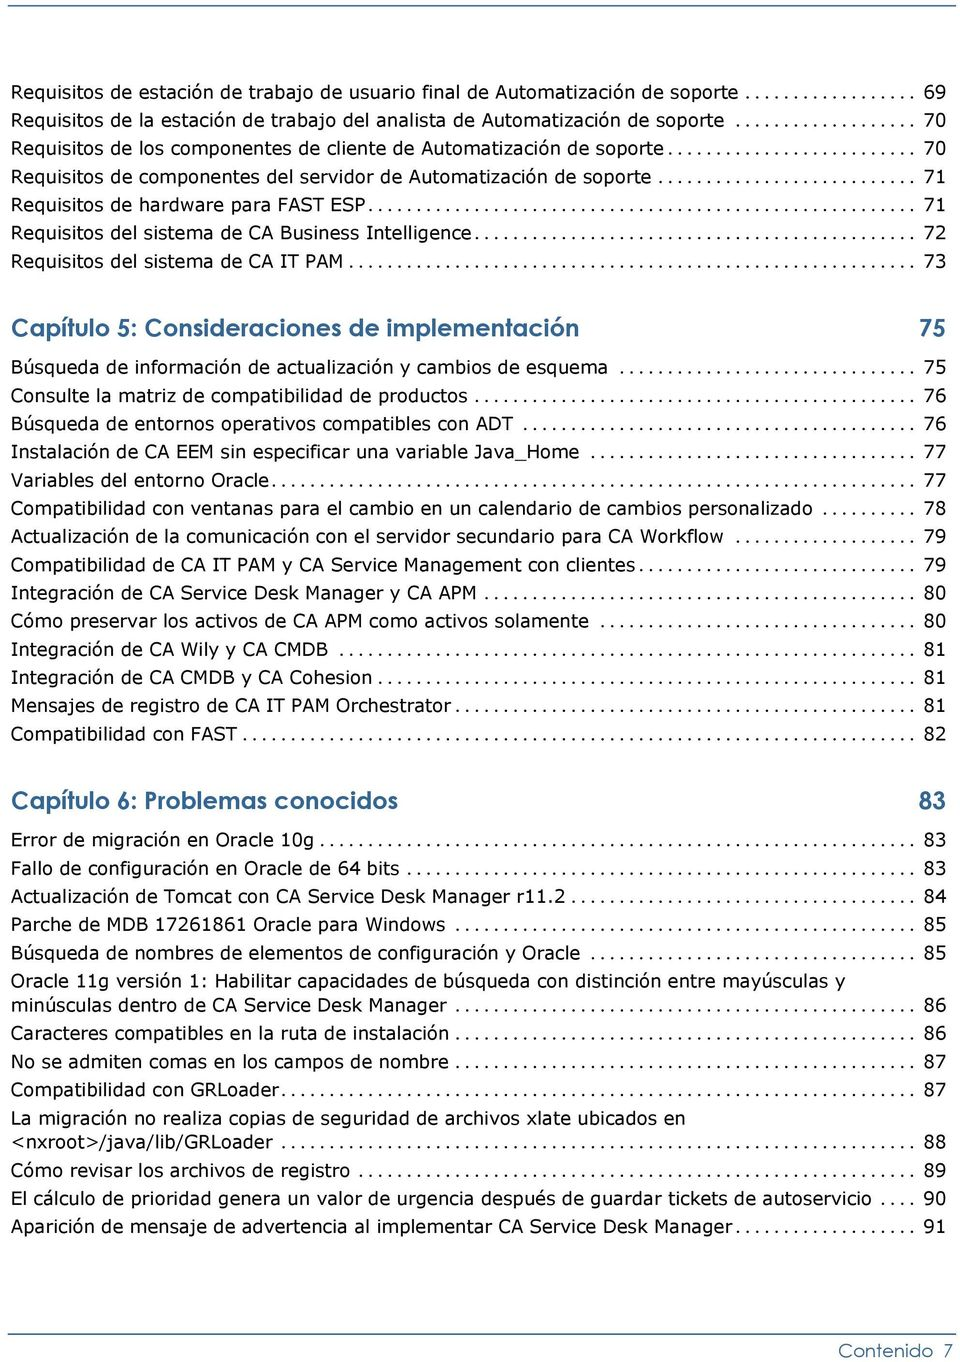 .. 71 Requisitos del sistema de CA Business Intelligence... 72 Requisitos del sistema de CA IT PAM.